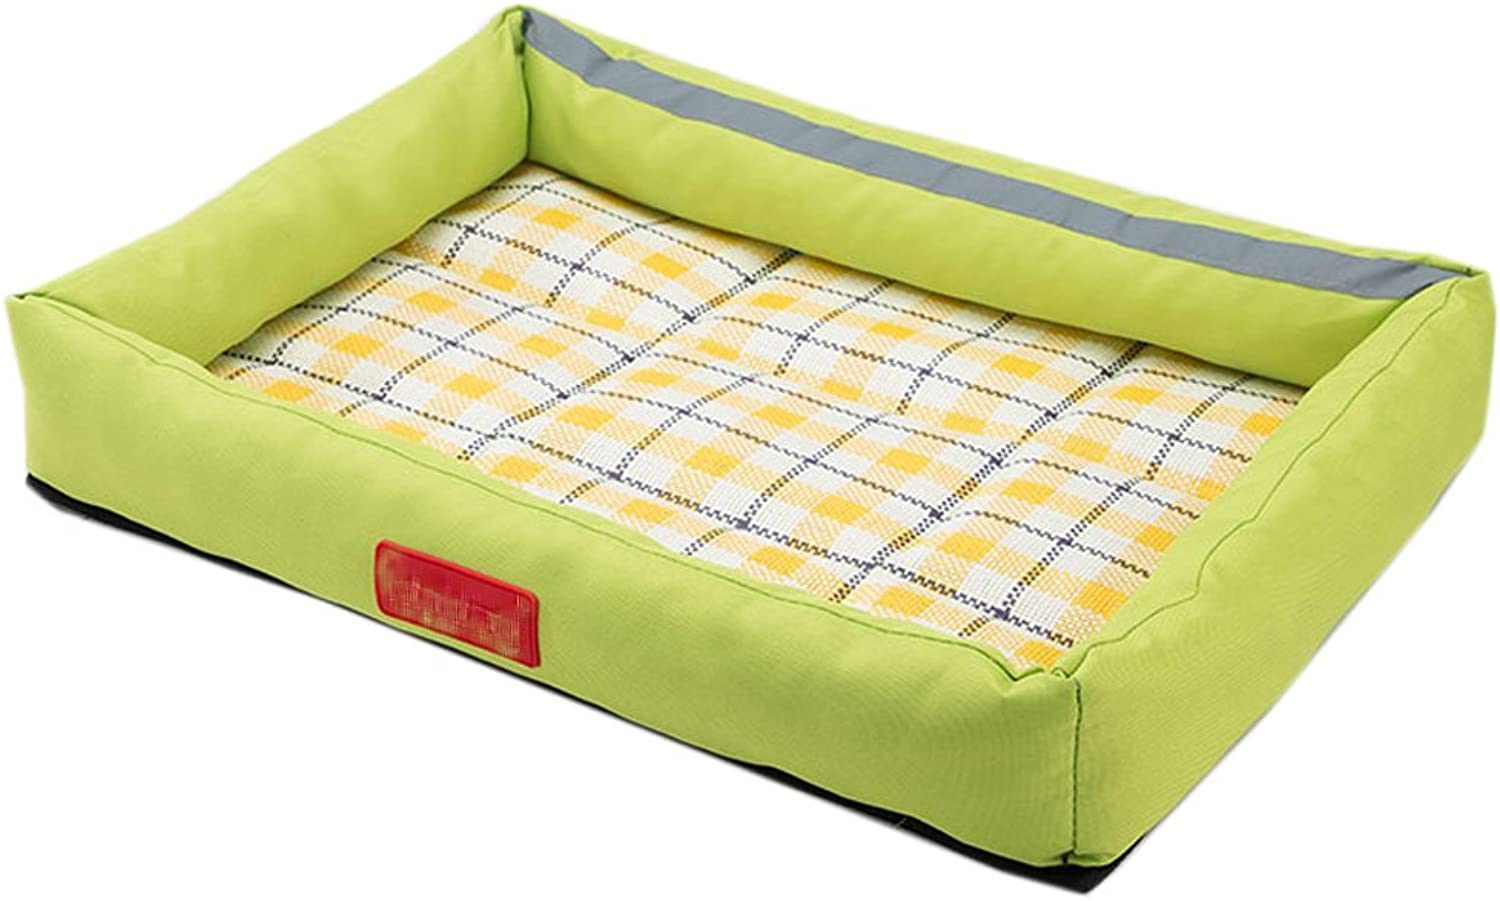 Fluffy Paws Pet Bed Crate Pad Premium Summer Bedding for Dogs & Cats,Light Green 1